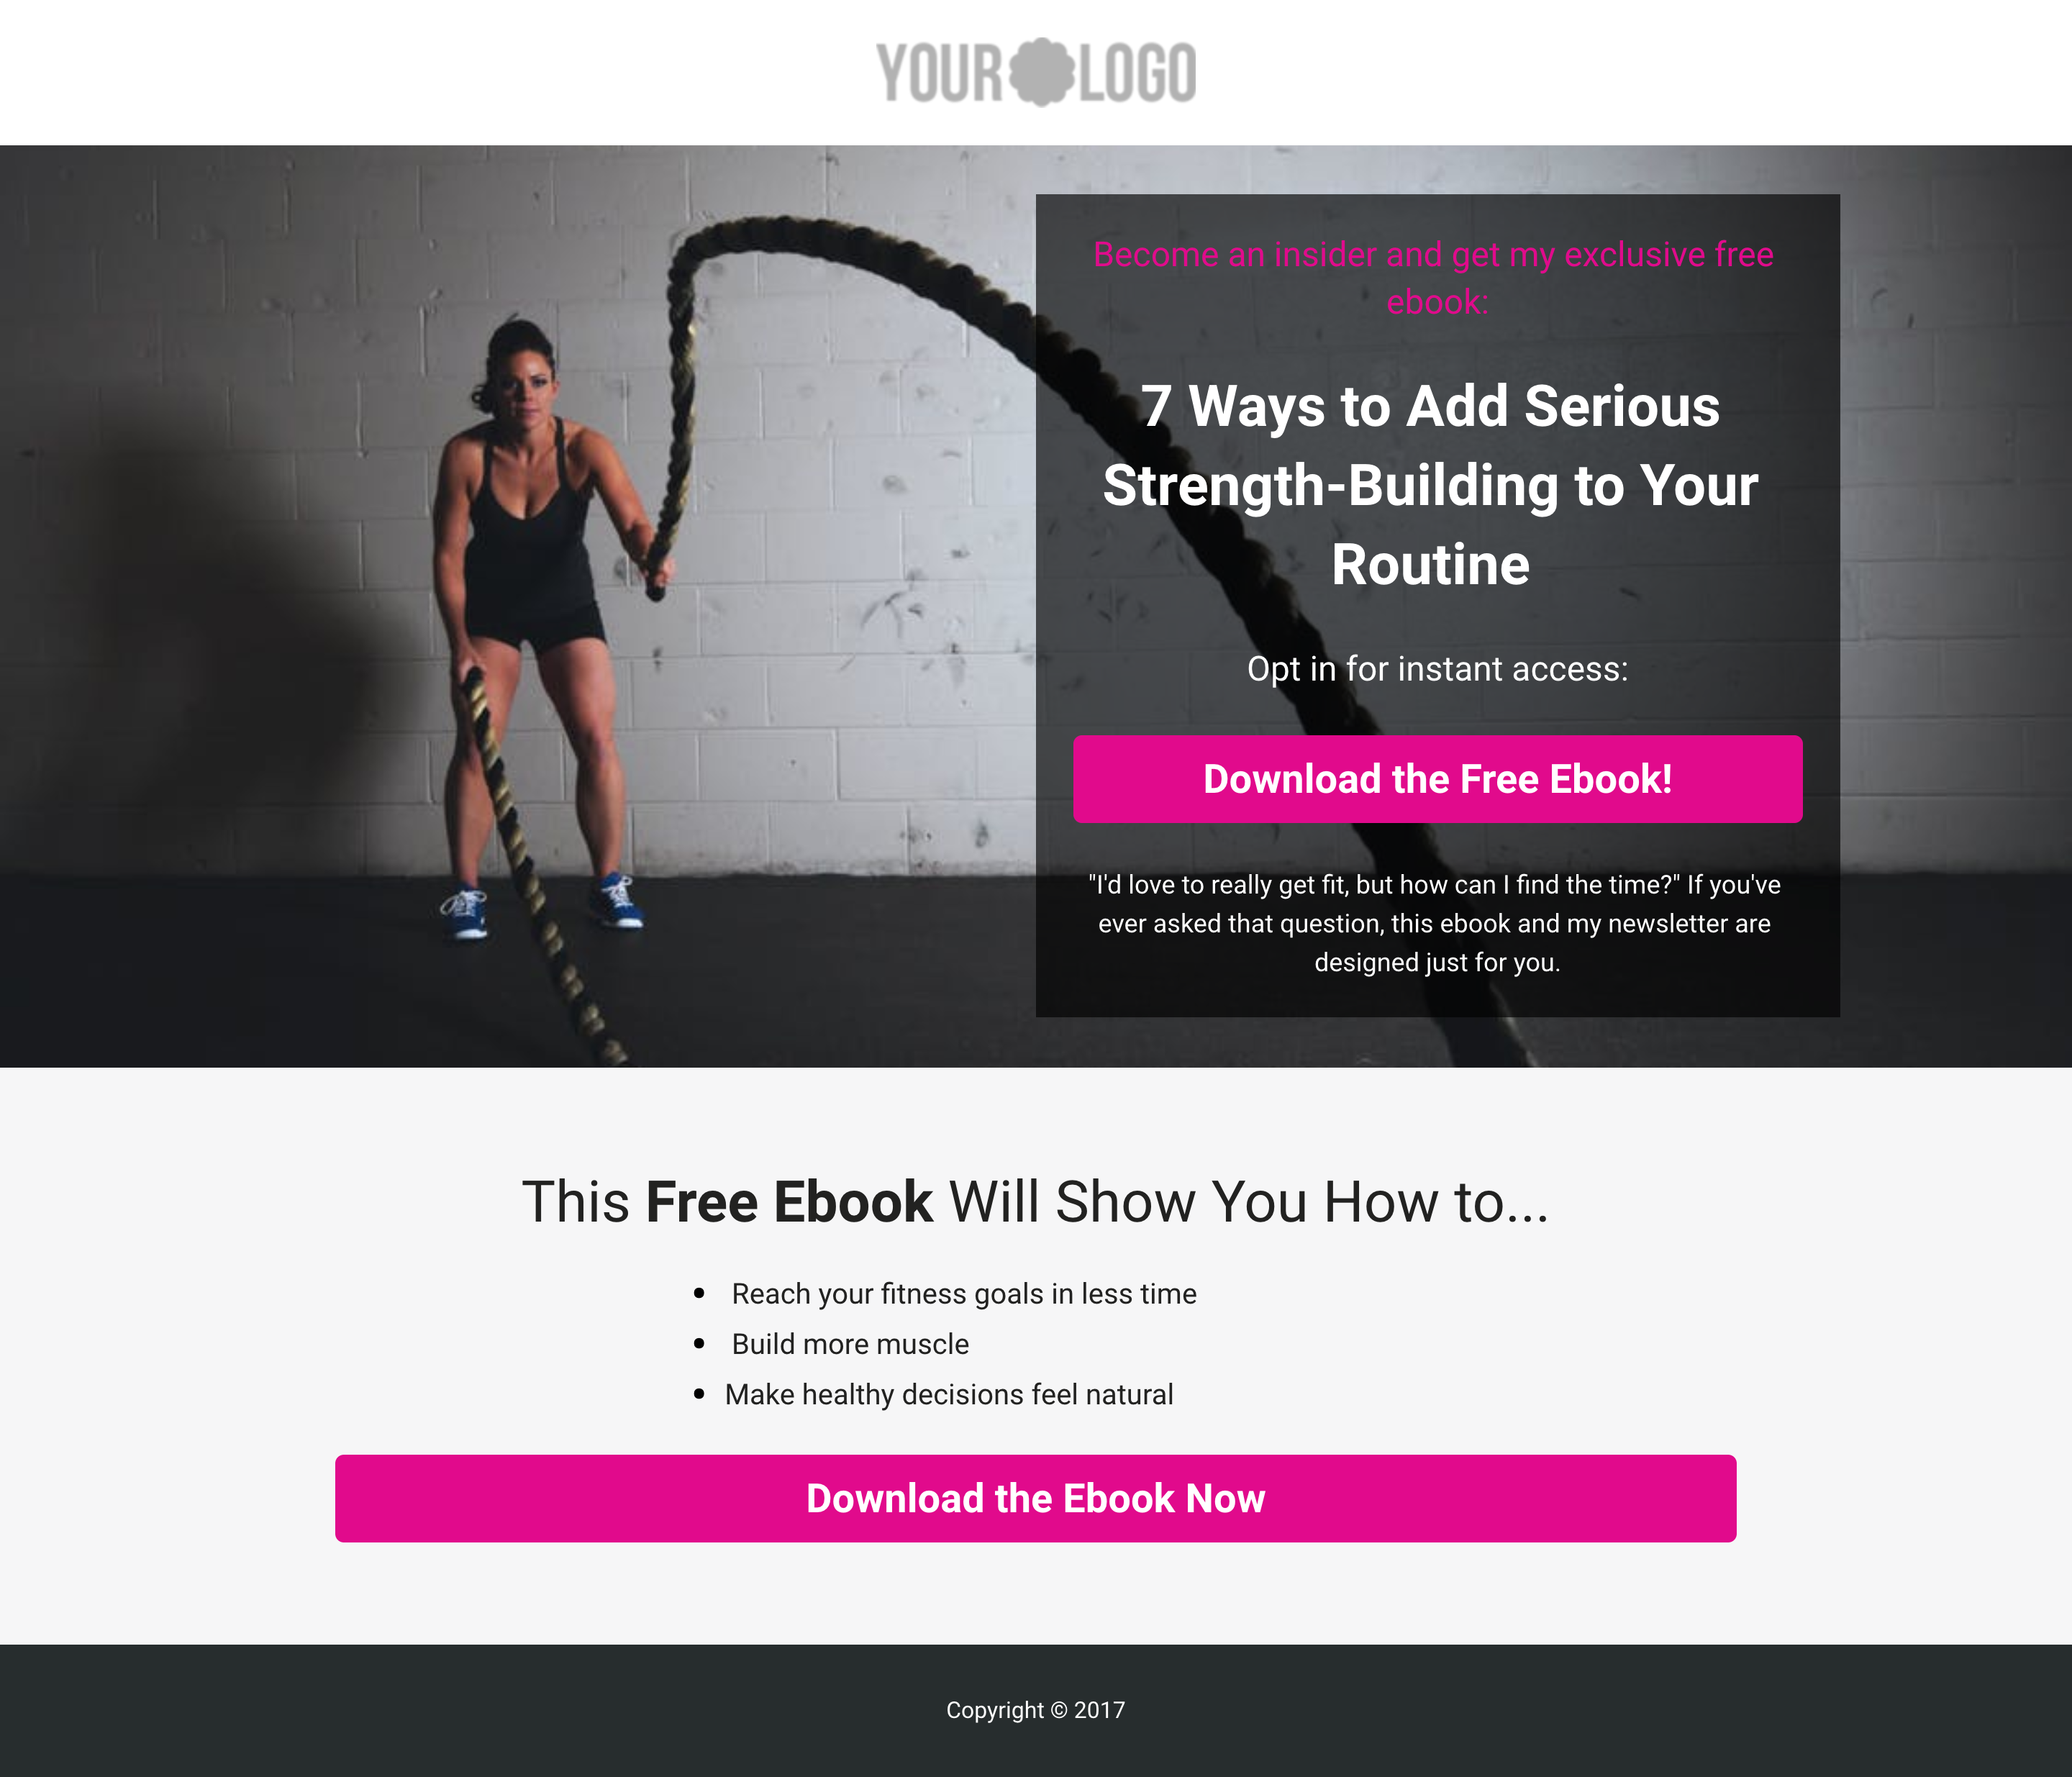 Health & Fitness Opt-in Landing Page Template (With Images